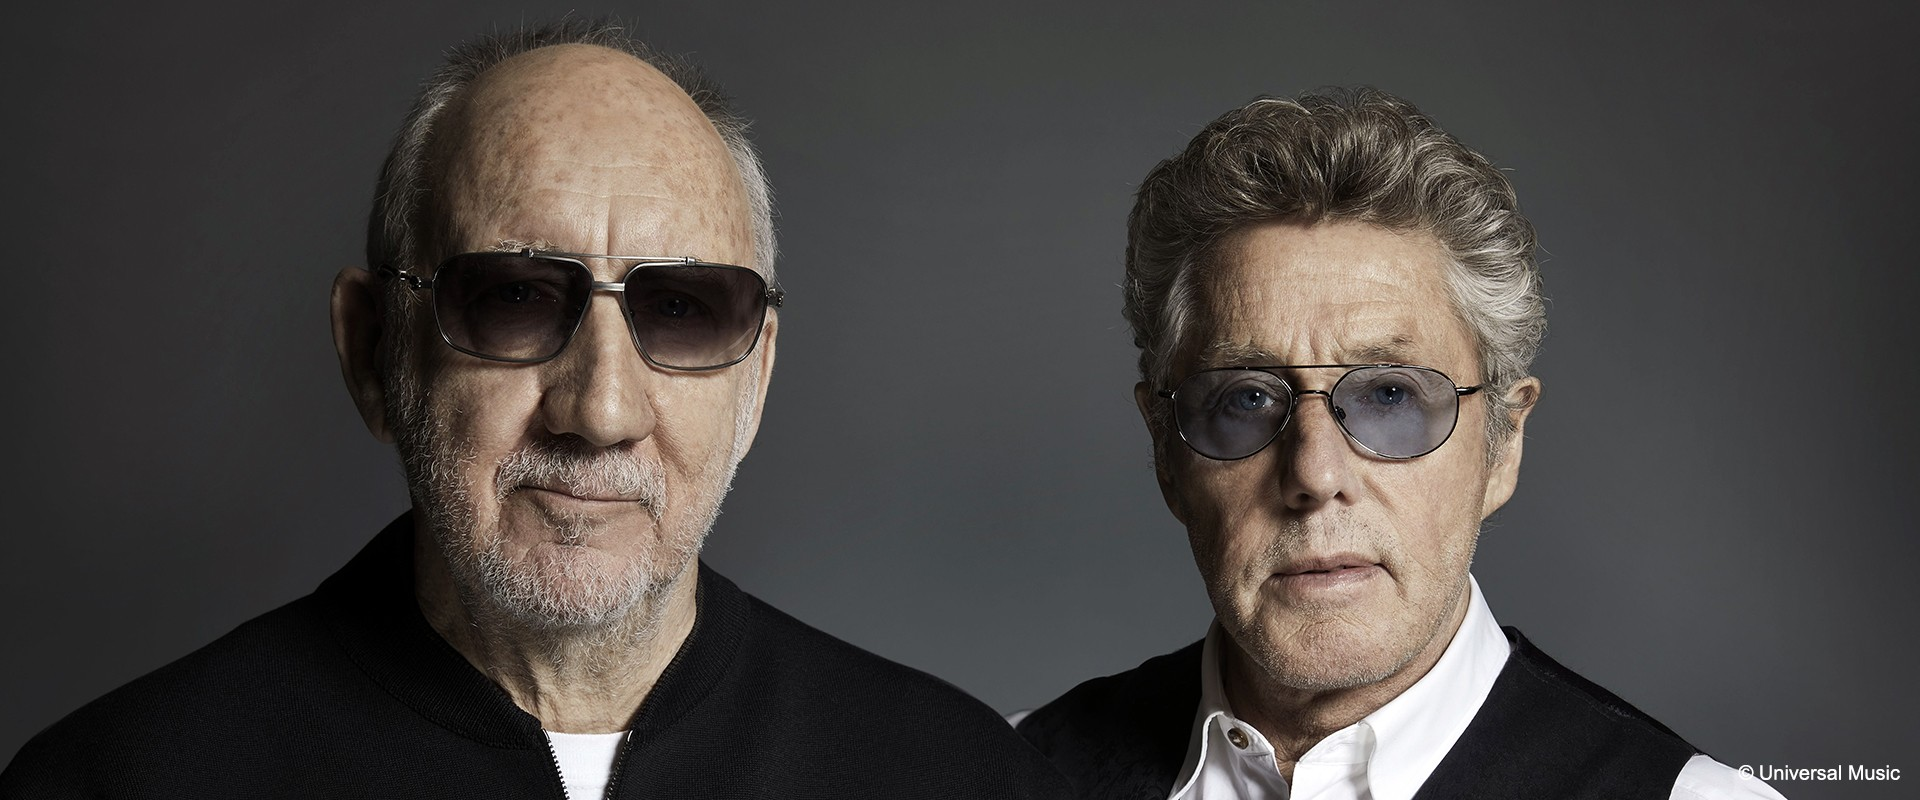 The Who als erste Band auf dem Music Walk Of Fame in London geehrt